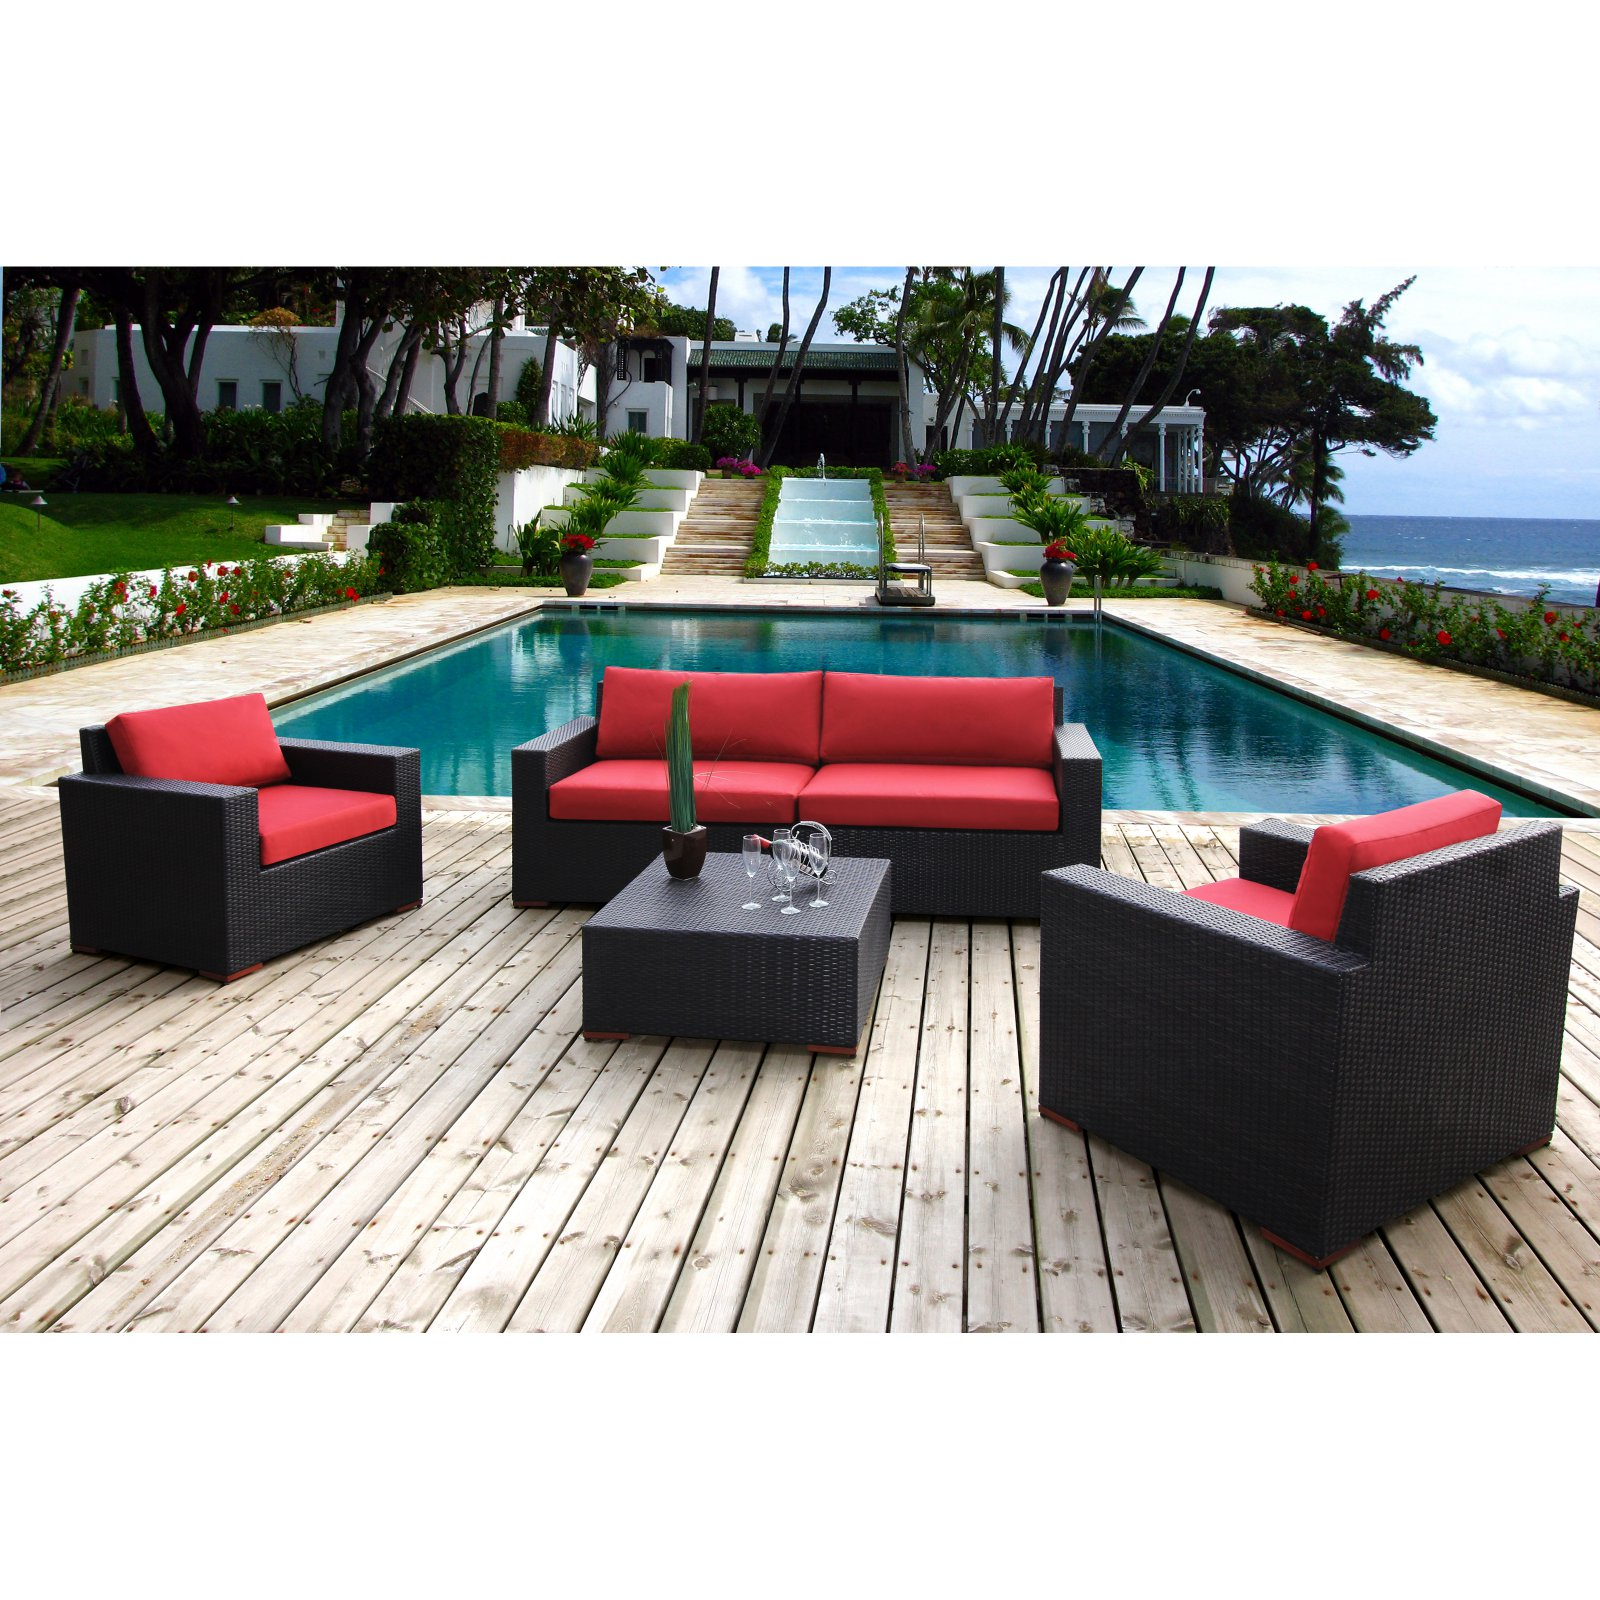 Nevis 5-Piece Deep Seating Sofa Set, Red